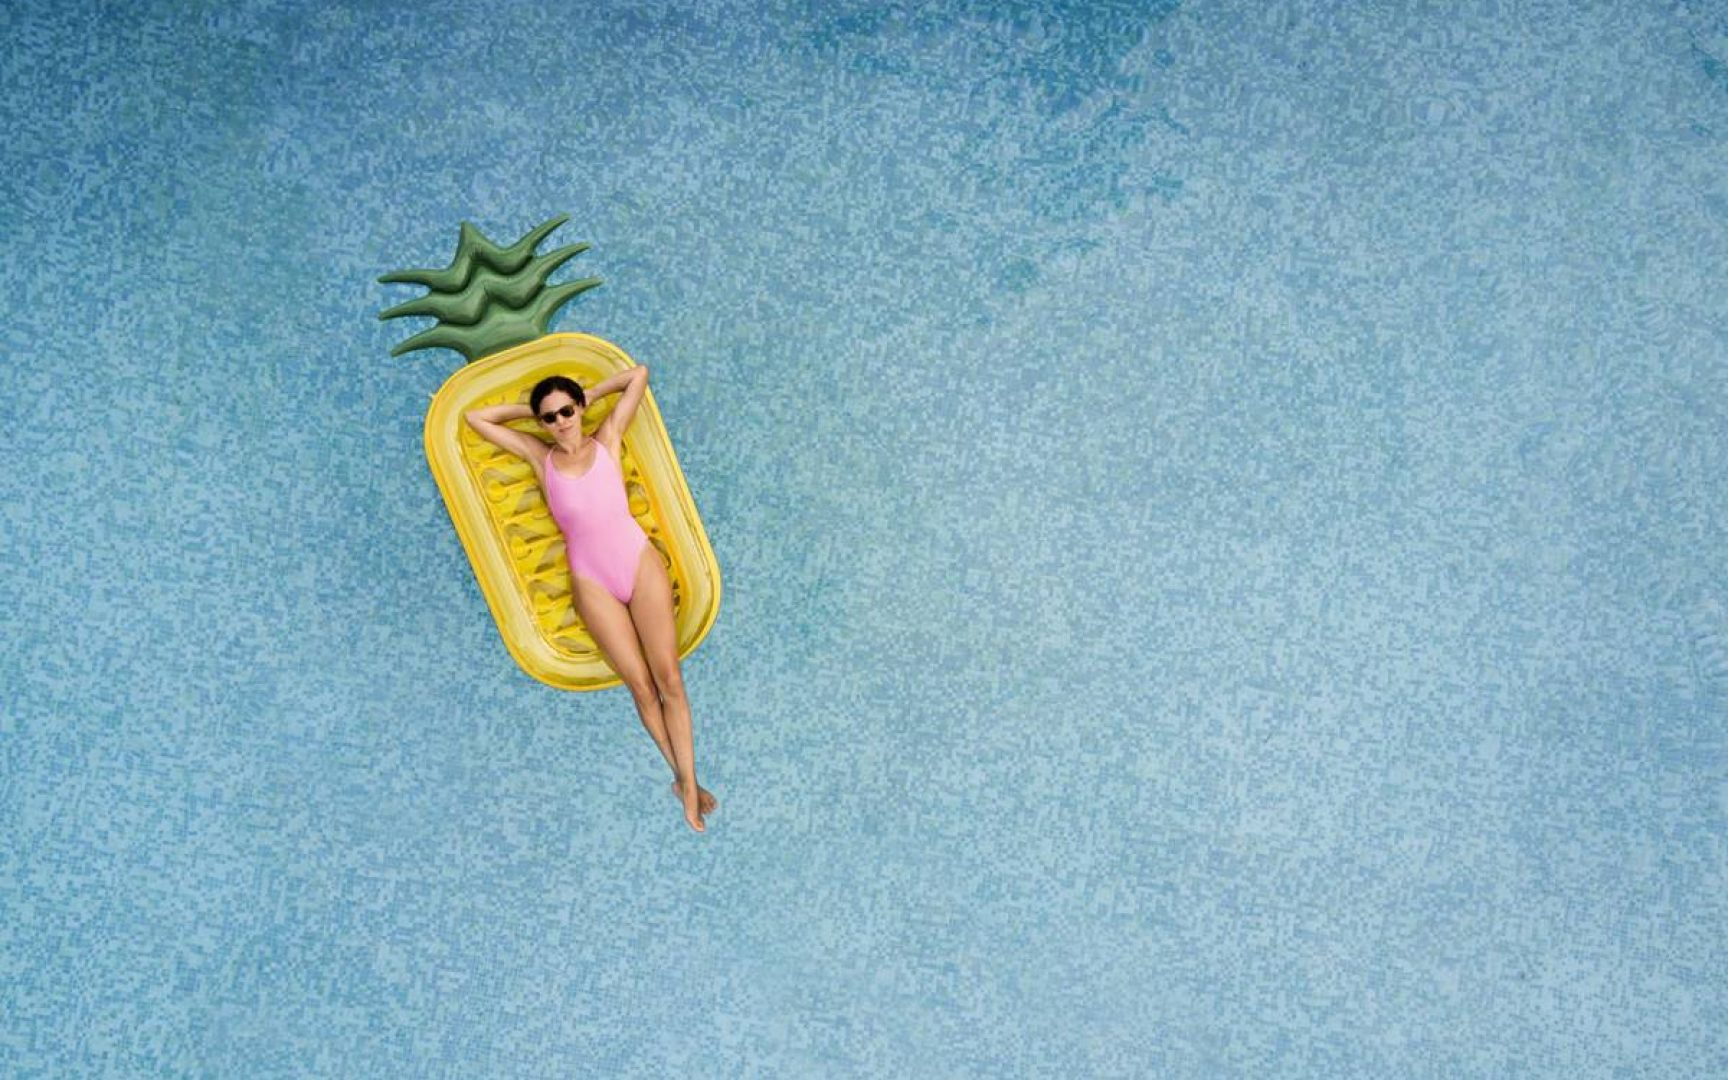 Carefree woman on inflatable pineapple